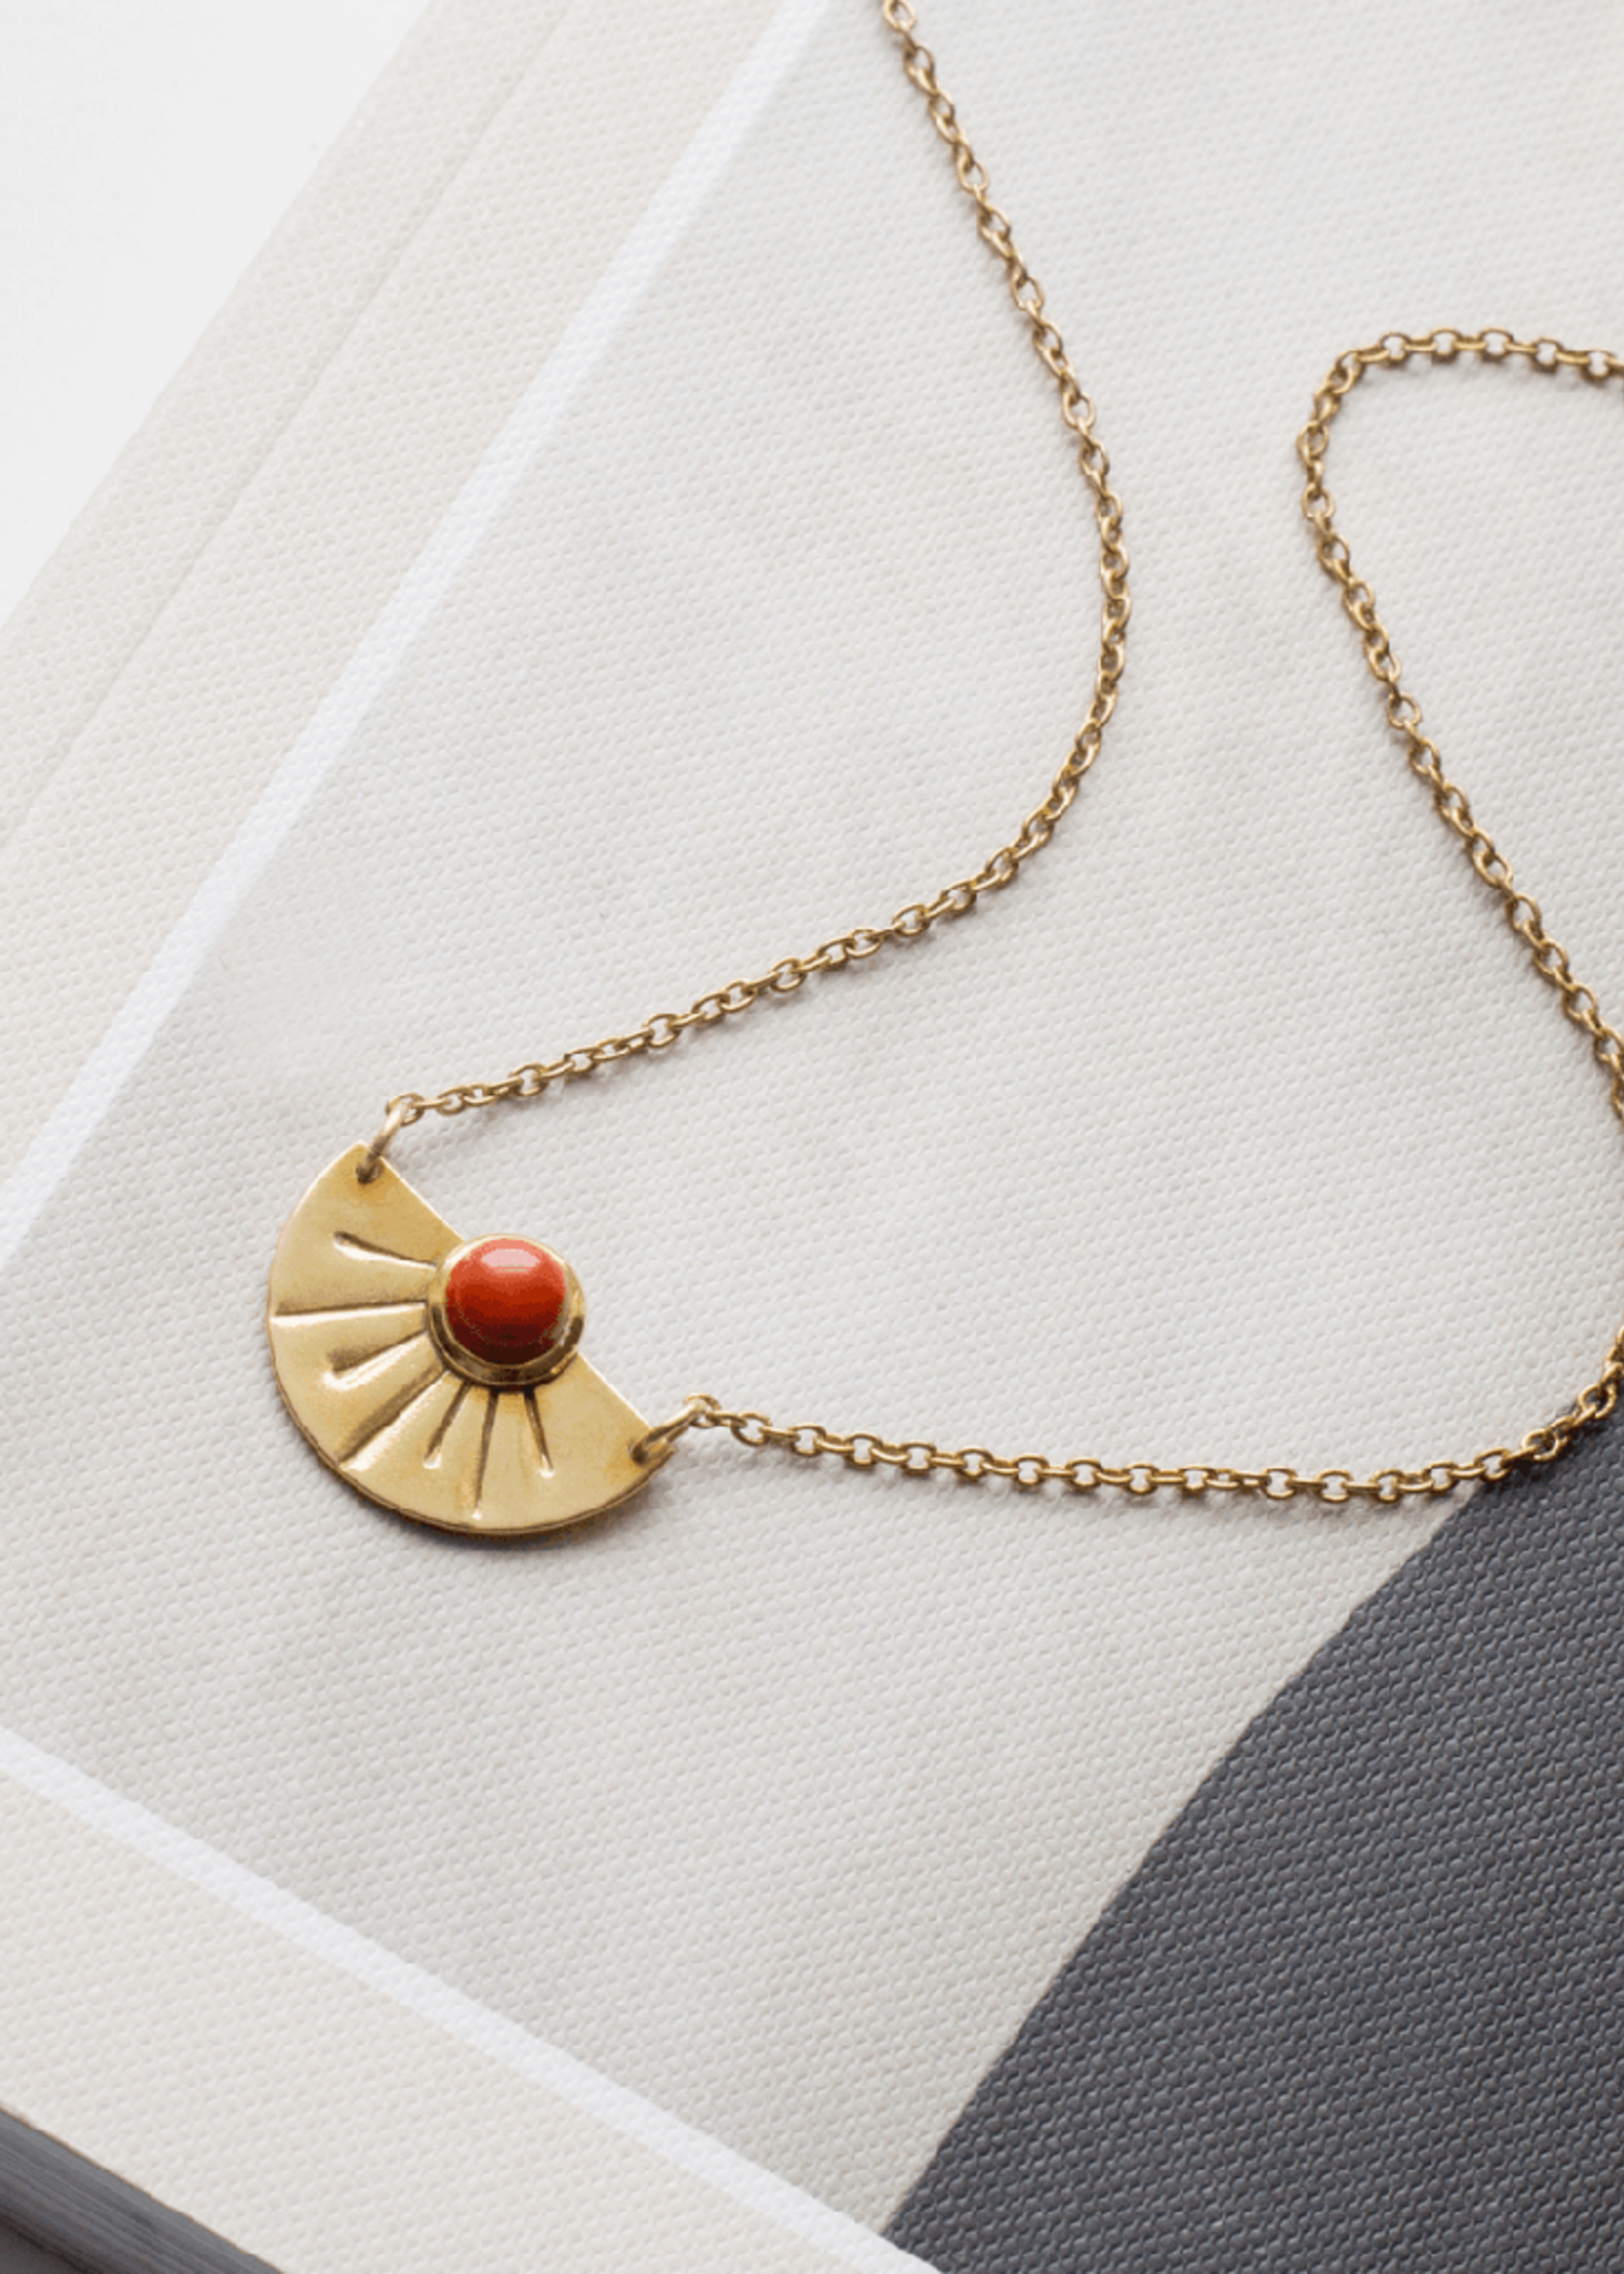 Purpose Jewelry Oasis Necklace